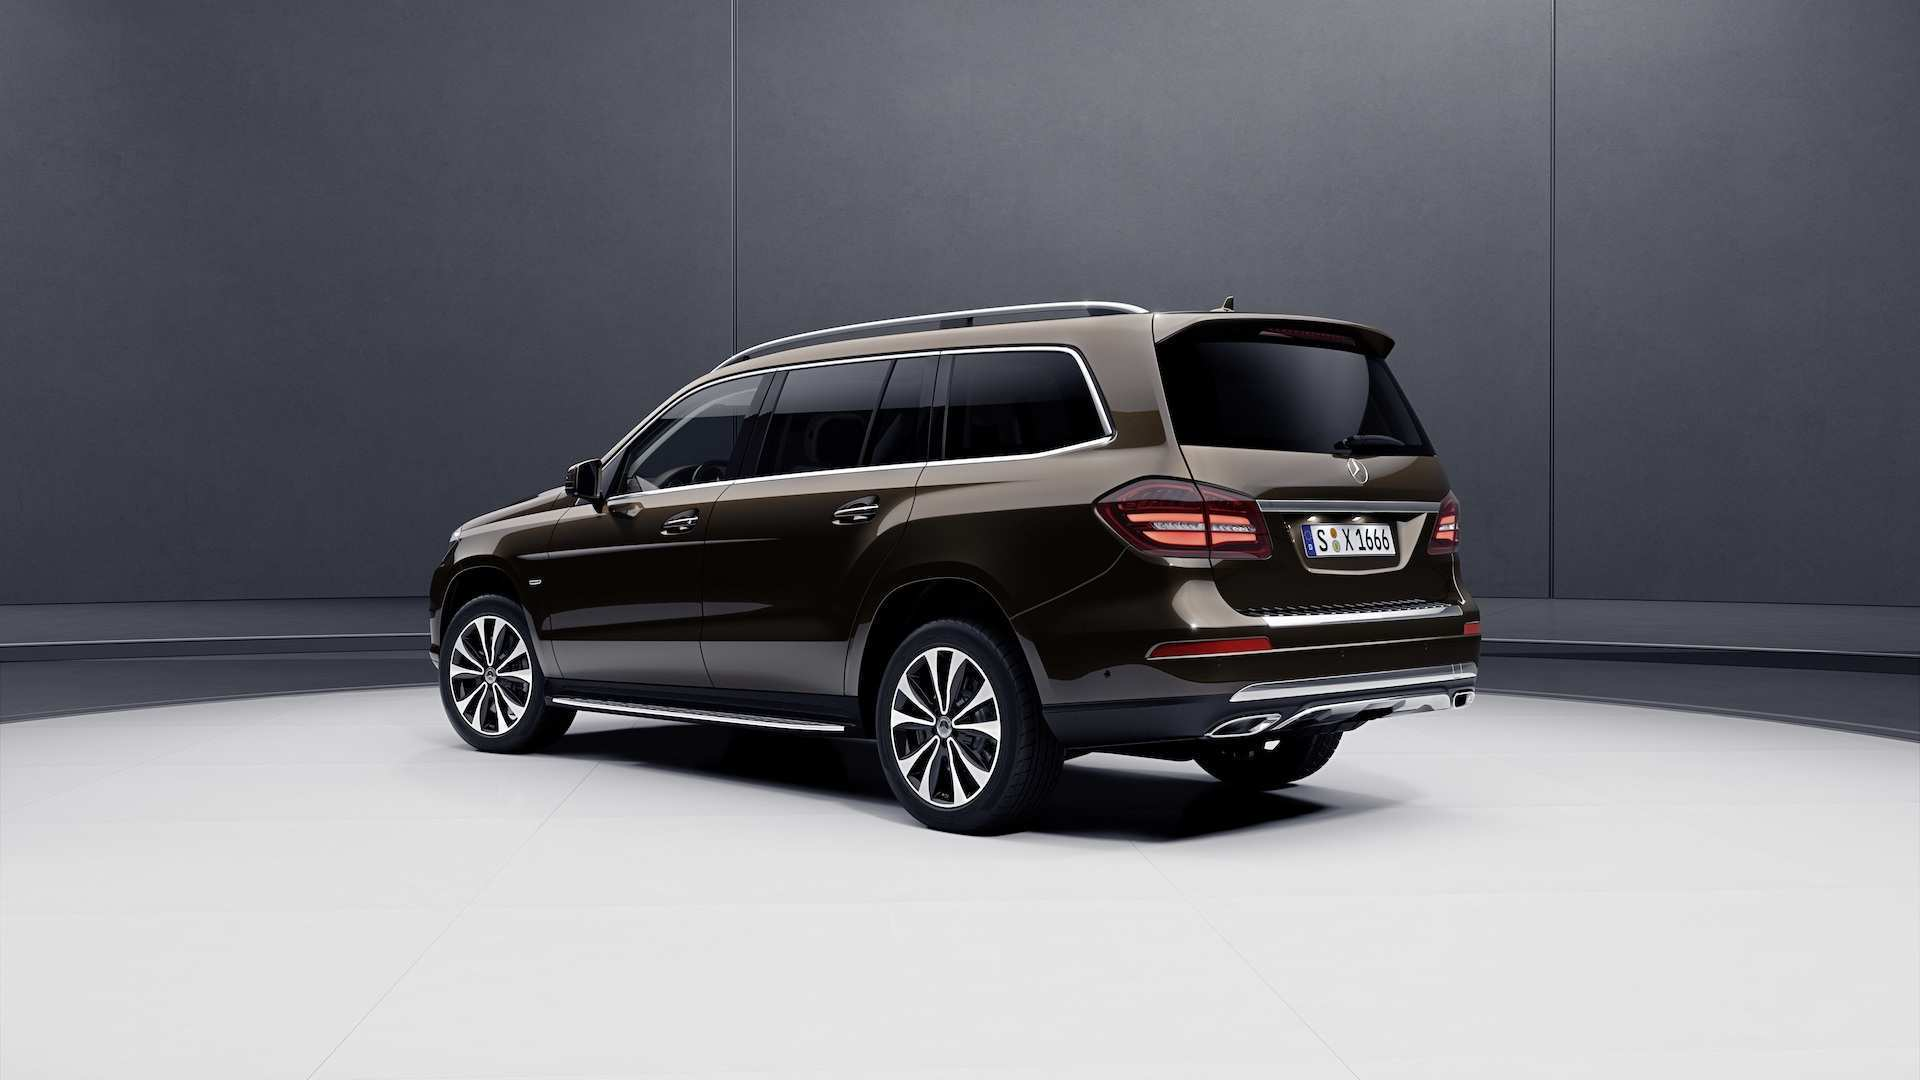 95 The Best 2019 Mercedes Gl Class Style